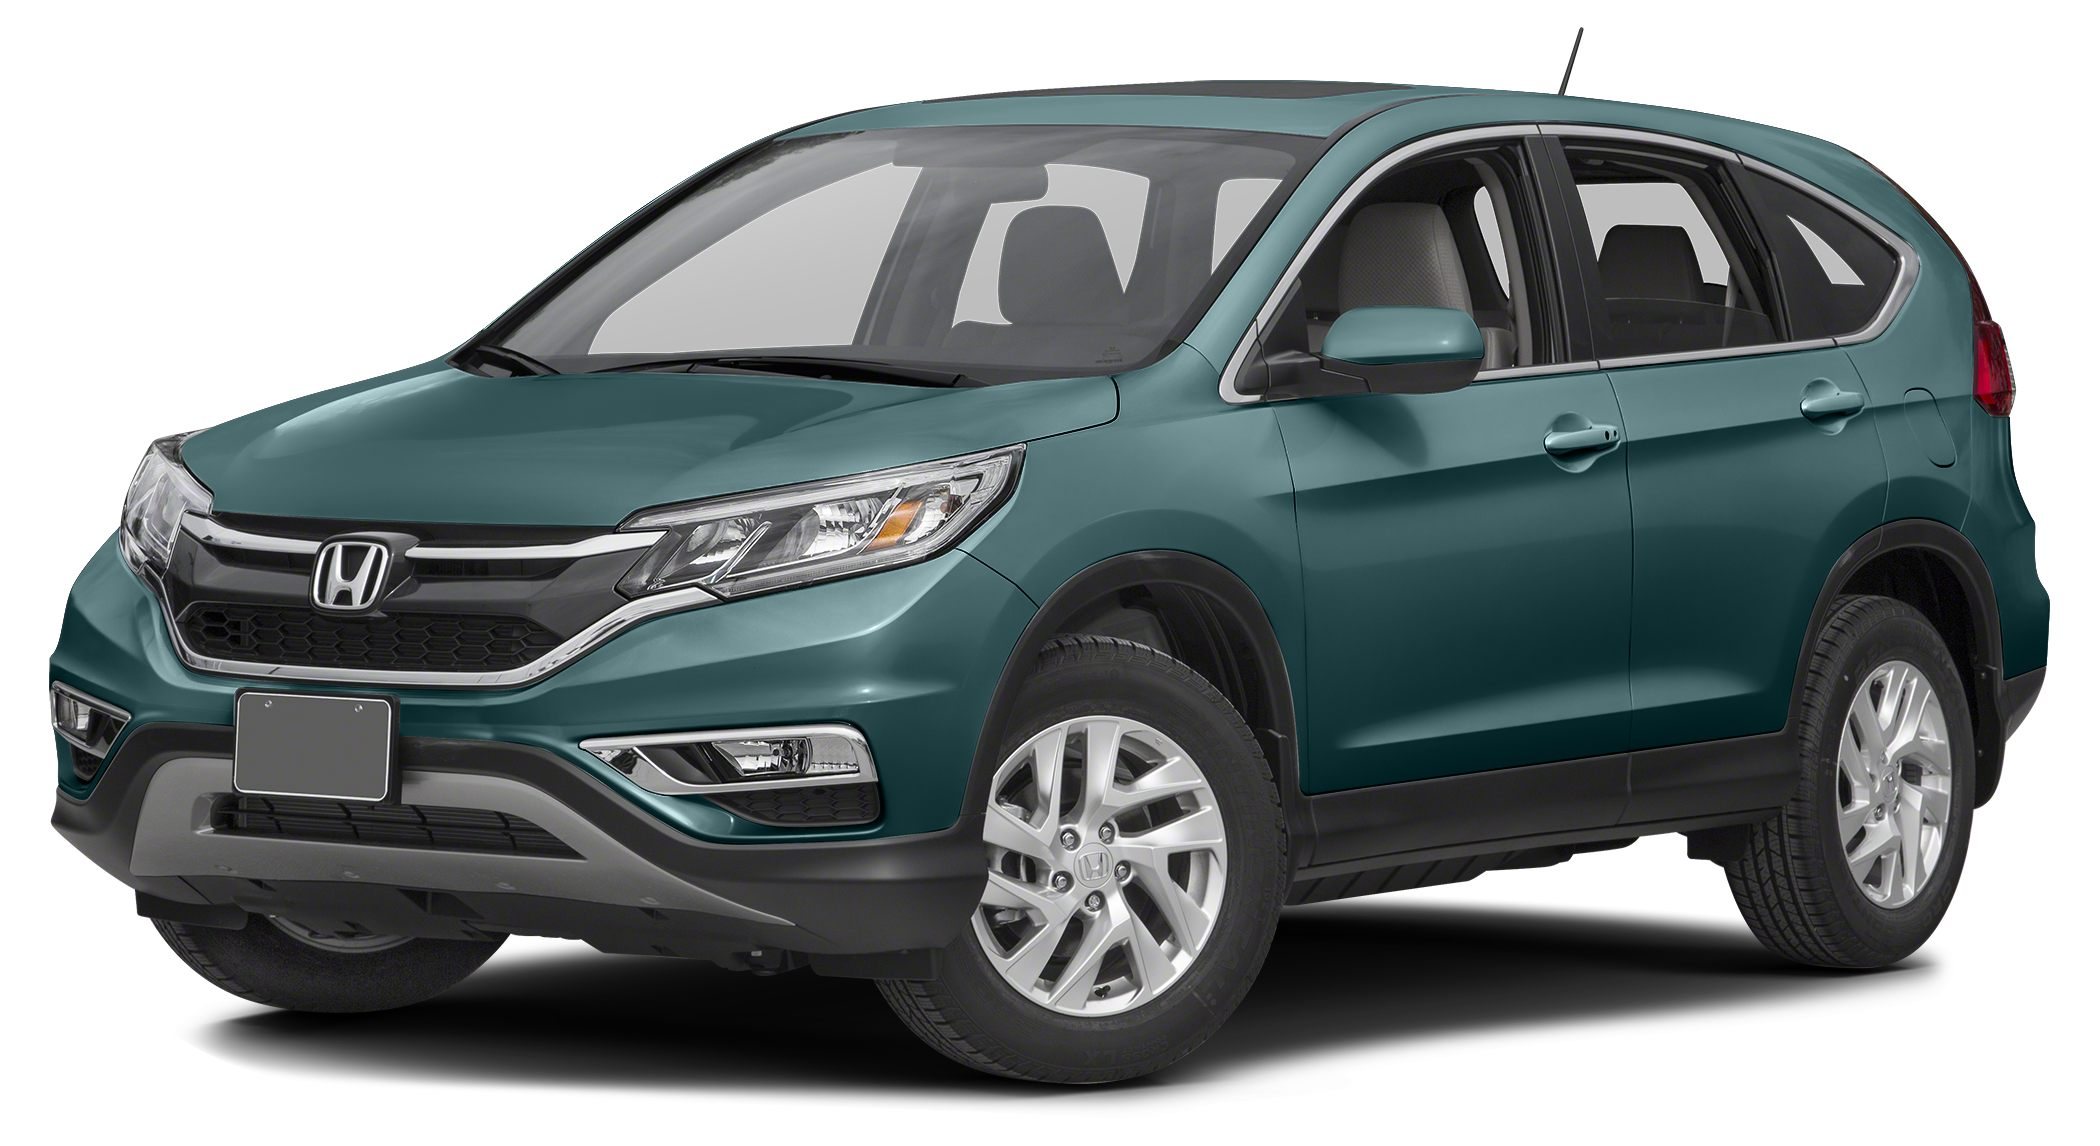 2016 Honda CR-V EX Outstanding fuel economy for an SUV Well-balanced in form and function Buy a